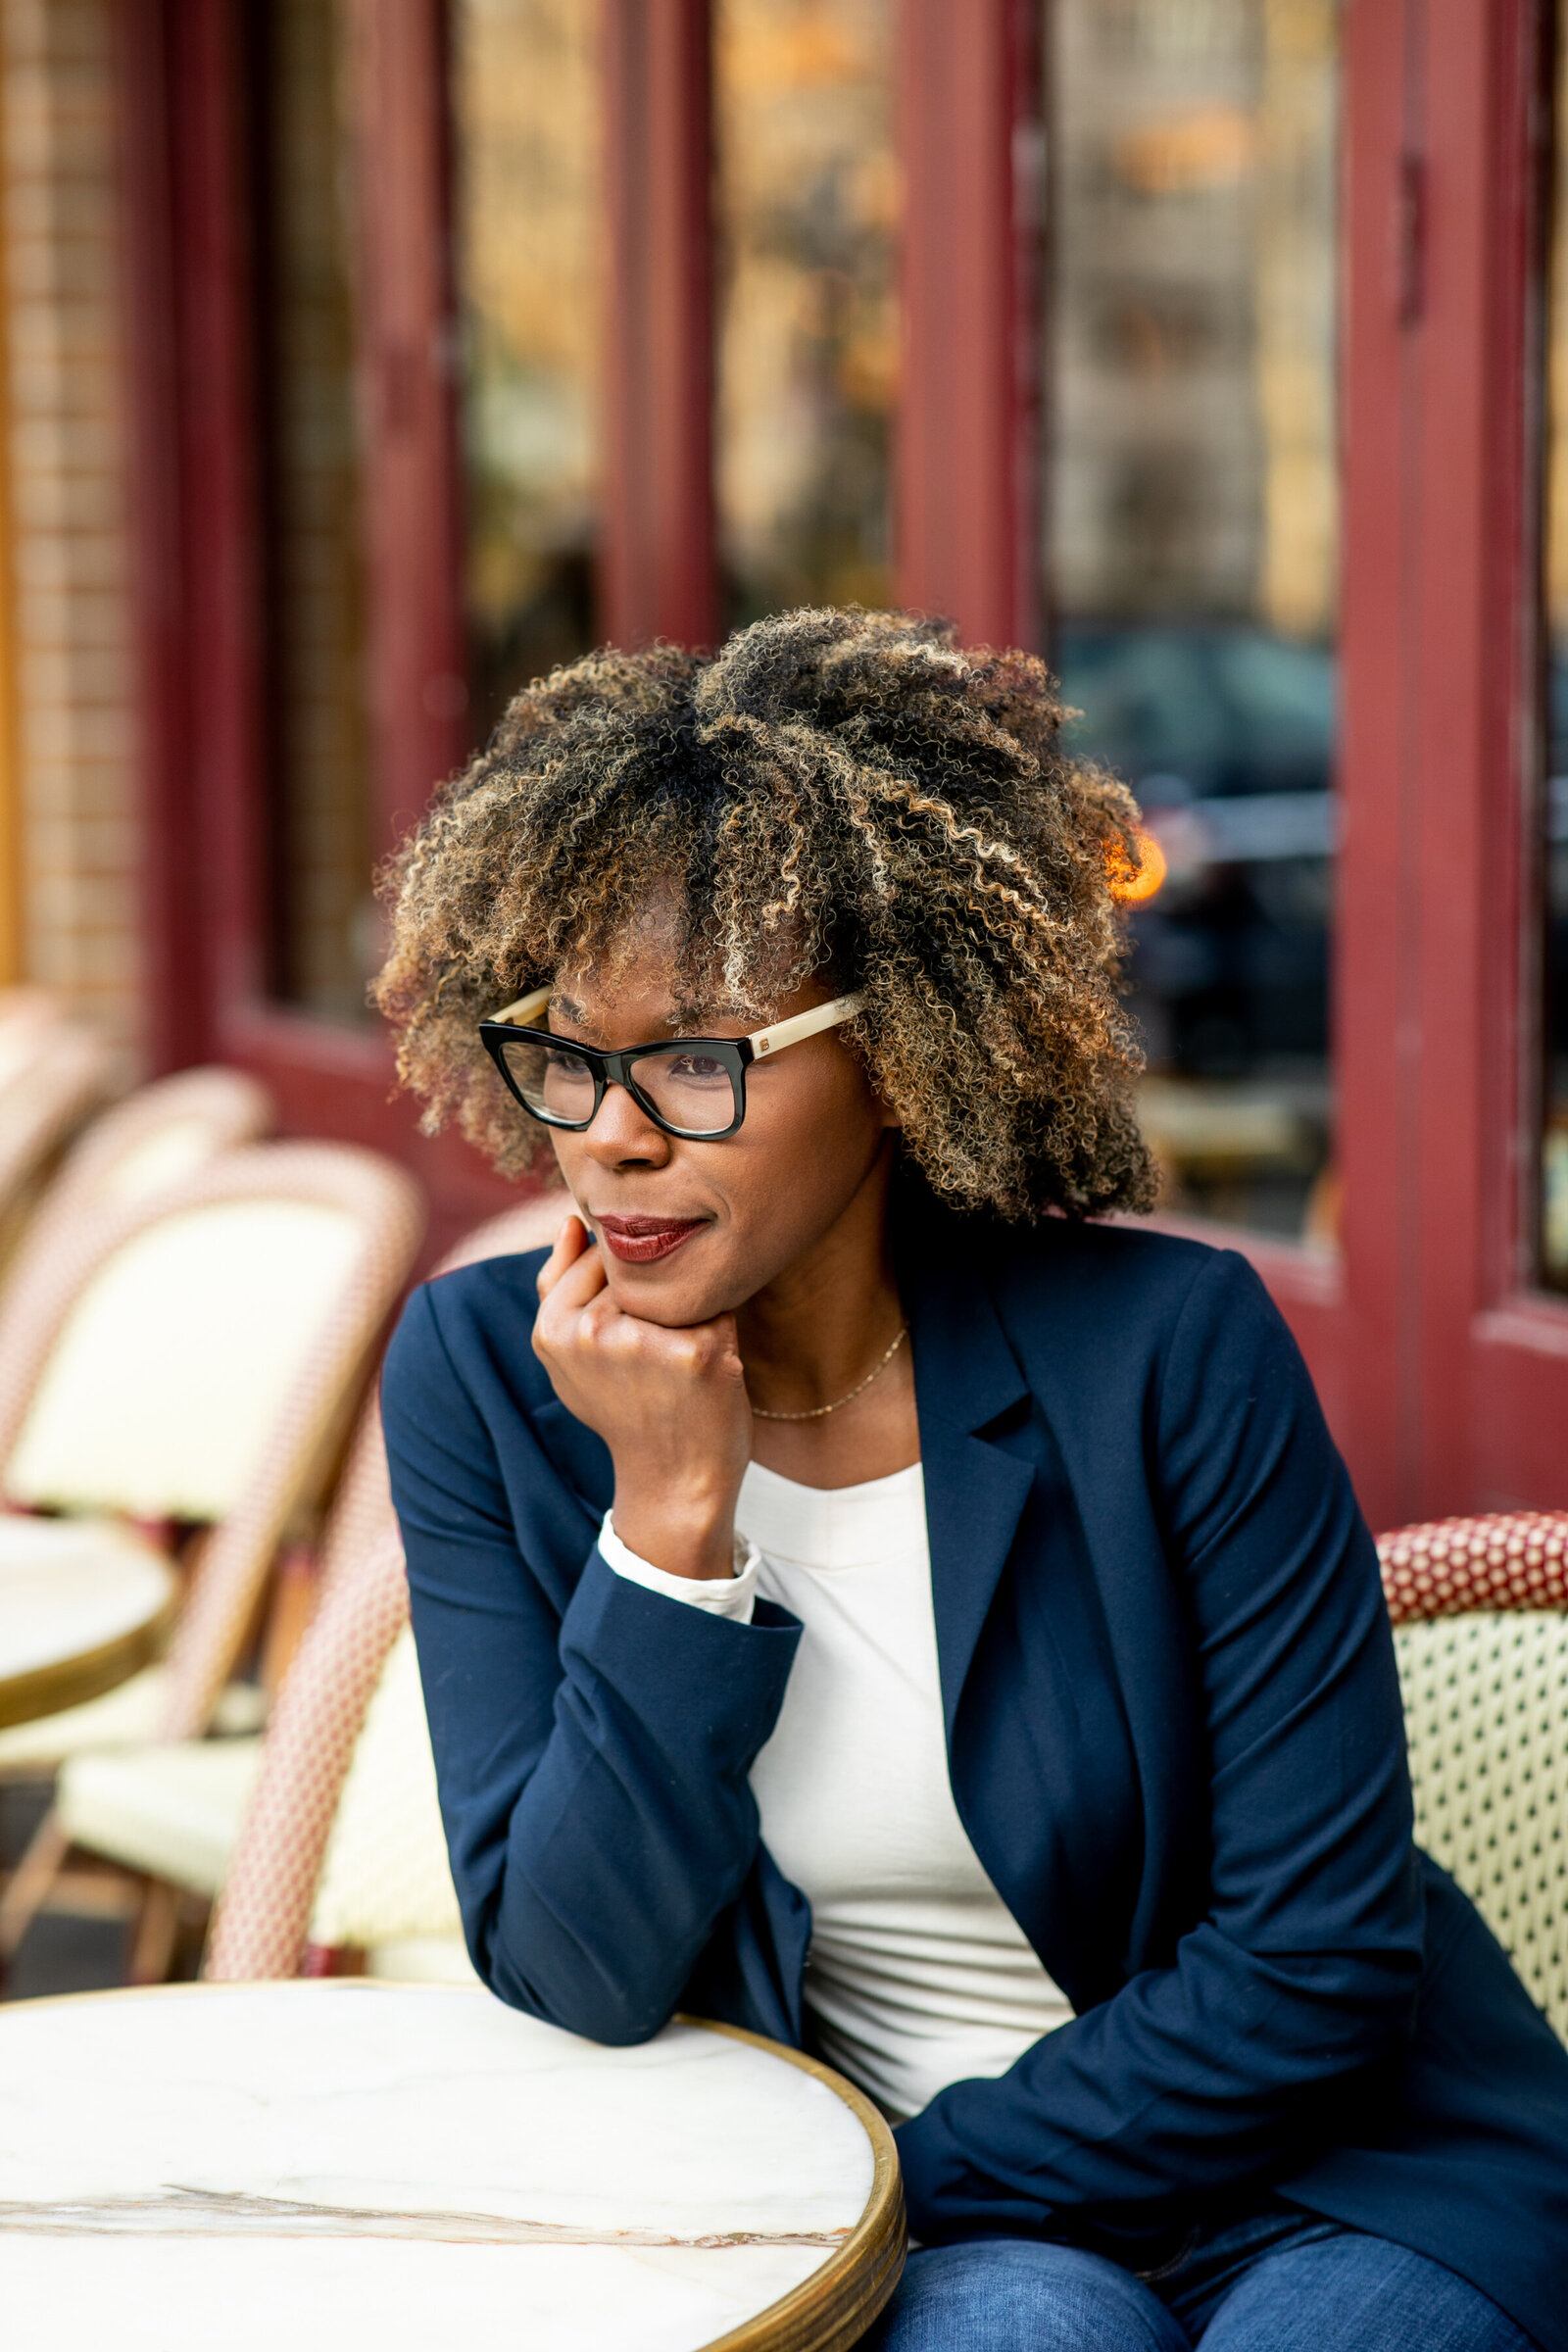 black woman with glasses at city restaurant